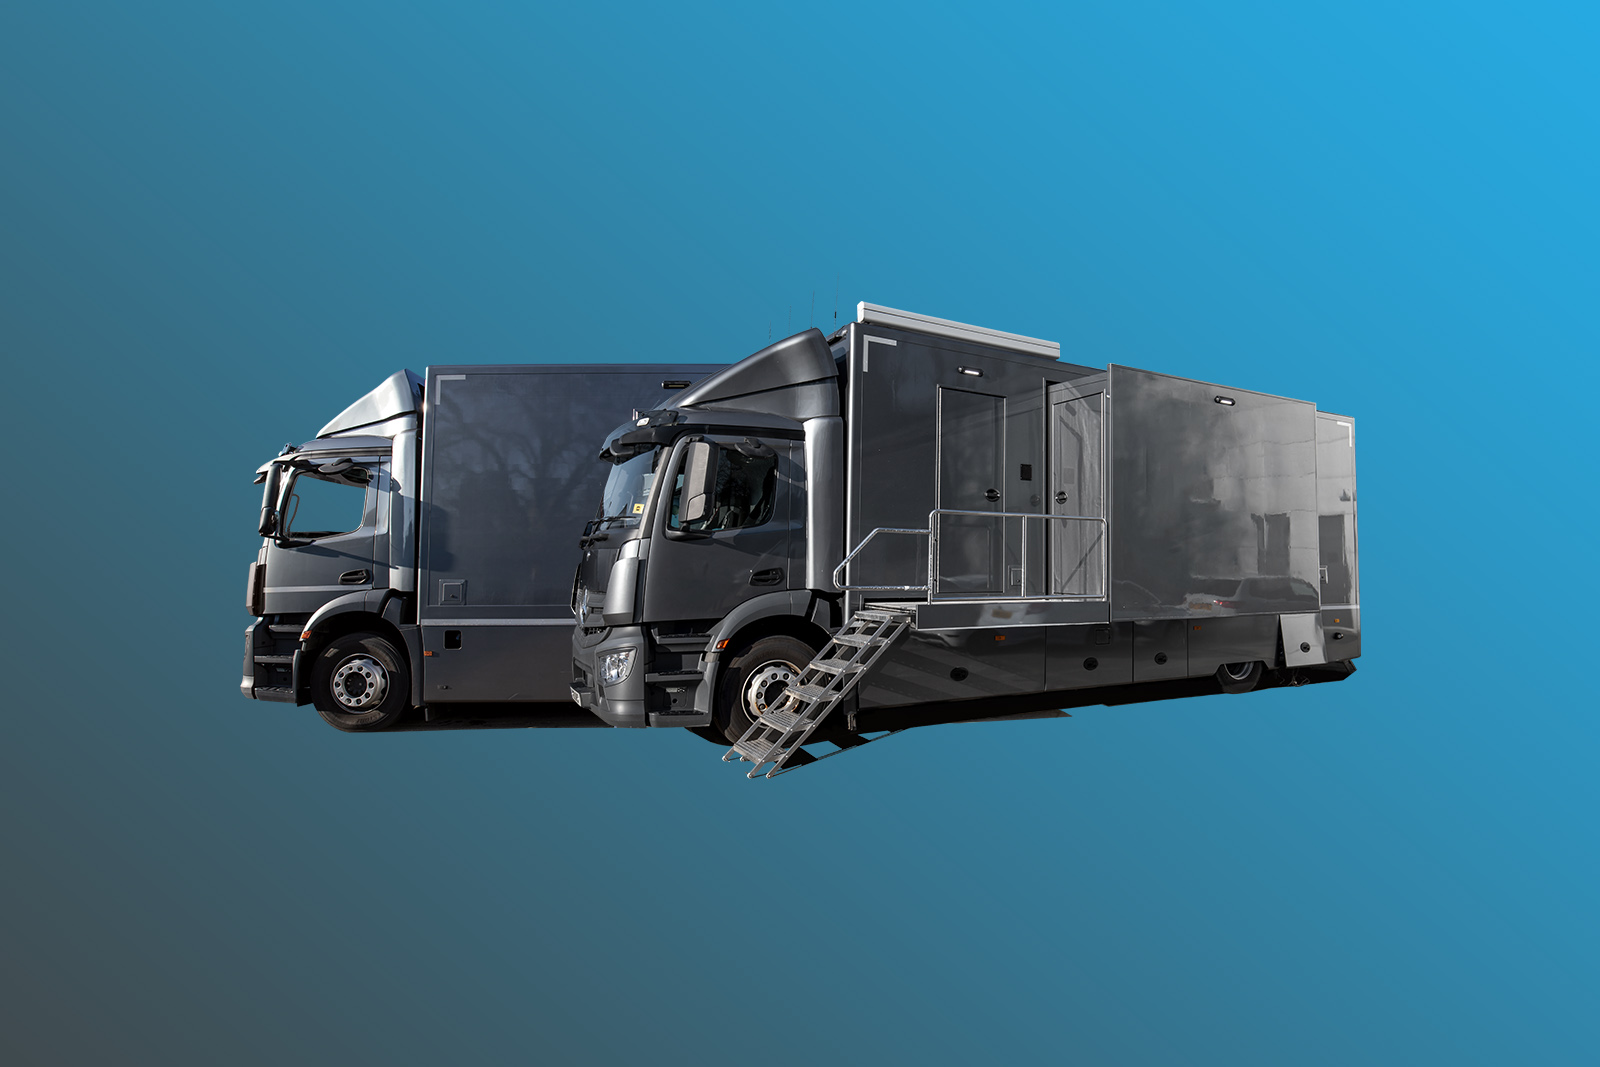 12-CAMERA SINGLE EXPANDER 4K HDR TRUCK WITH TENDER VEHICLE - Image #1